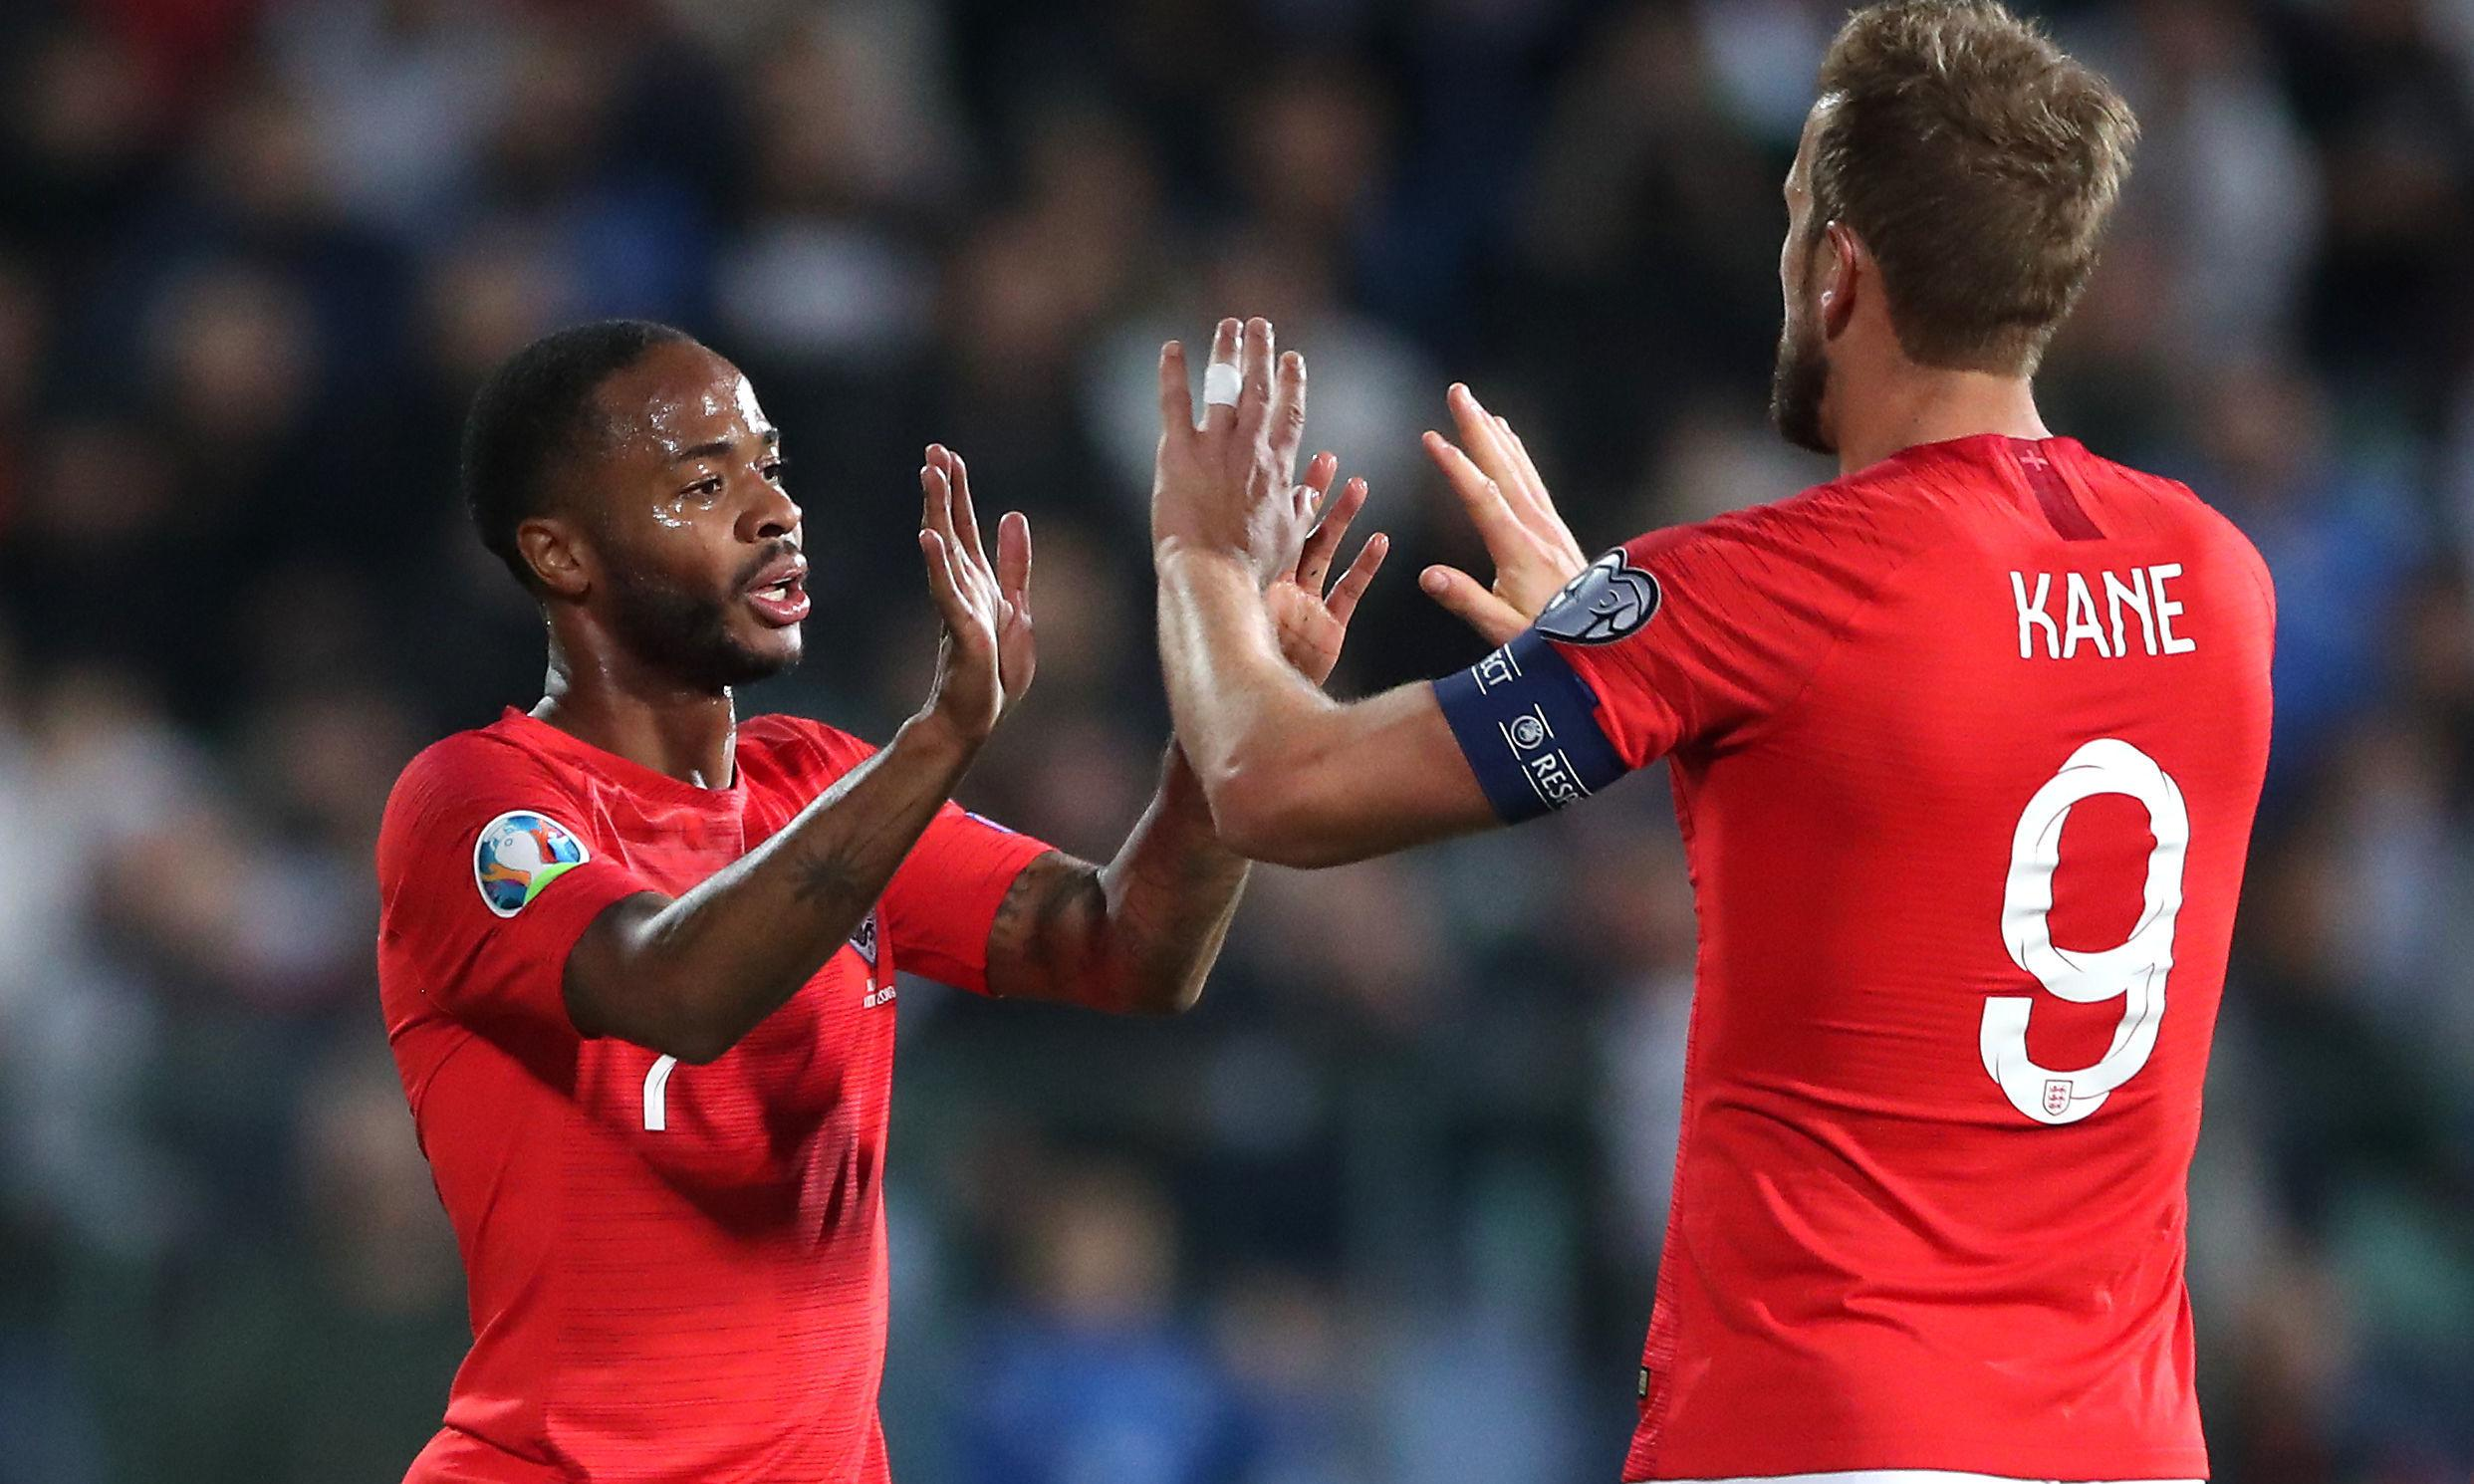 England trounce Bulgaria 6-0 but forced into stoppages by racist chanting